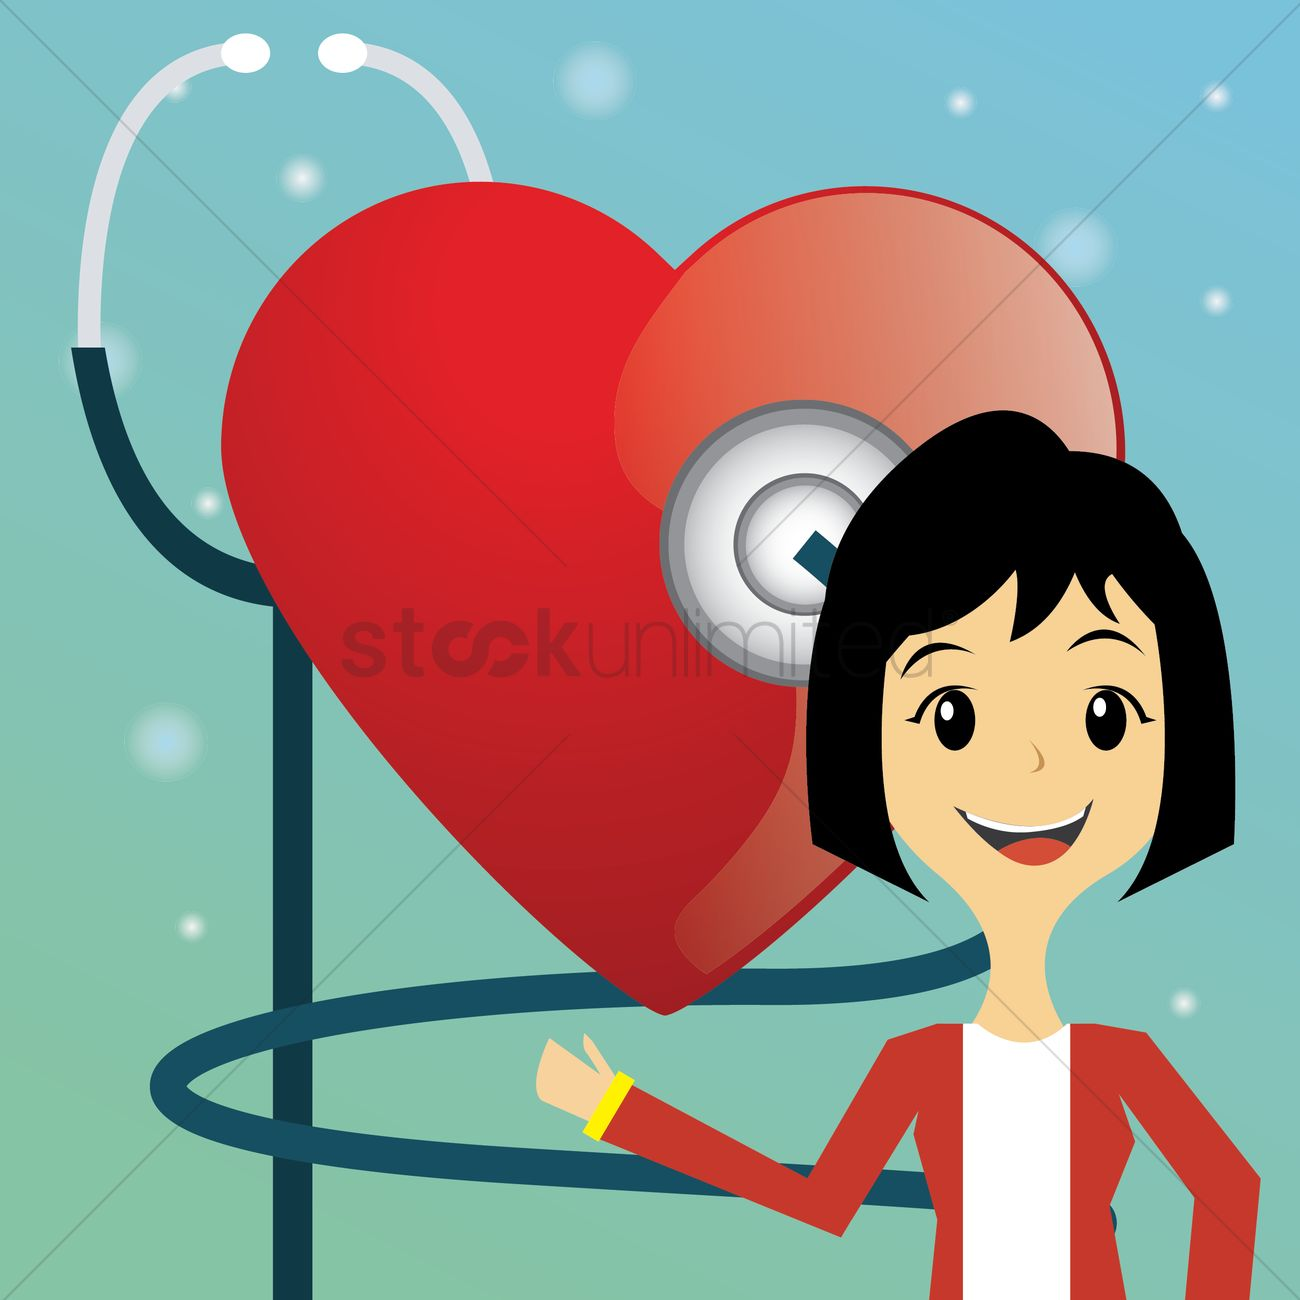 Woman doctor checking heart beat Vector Image.